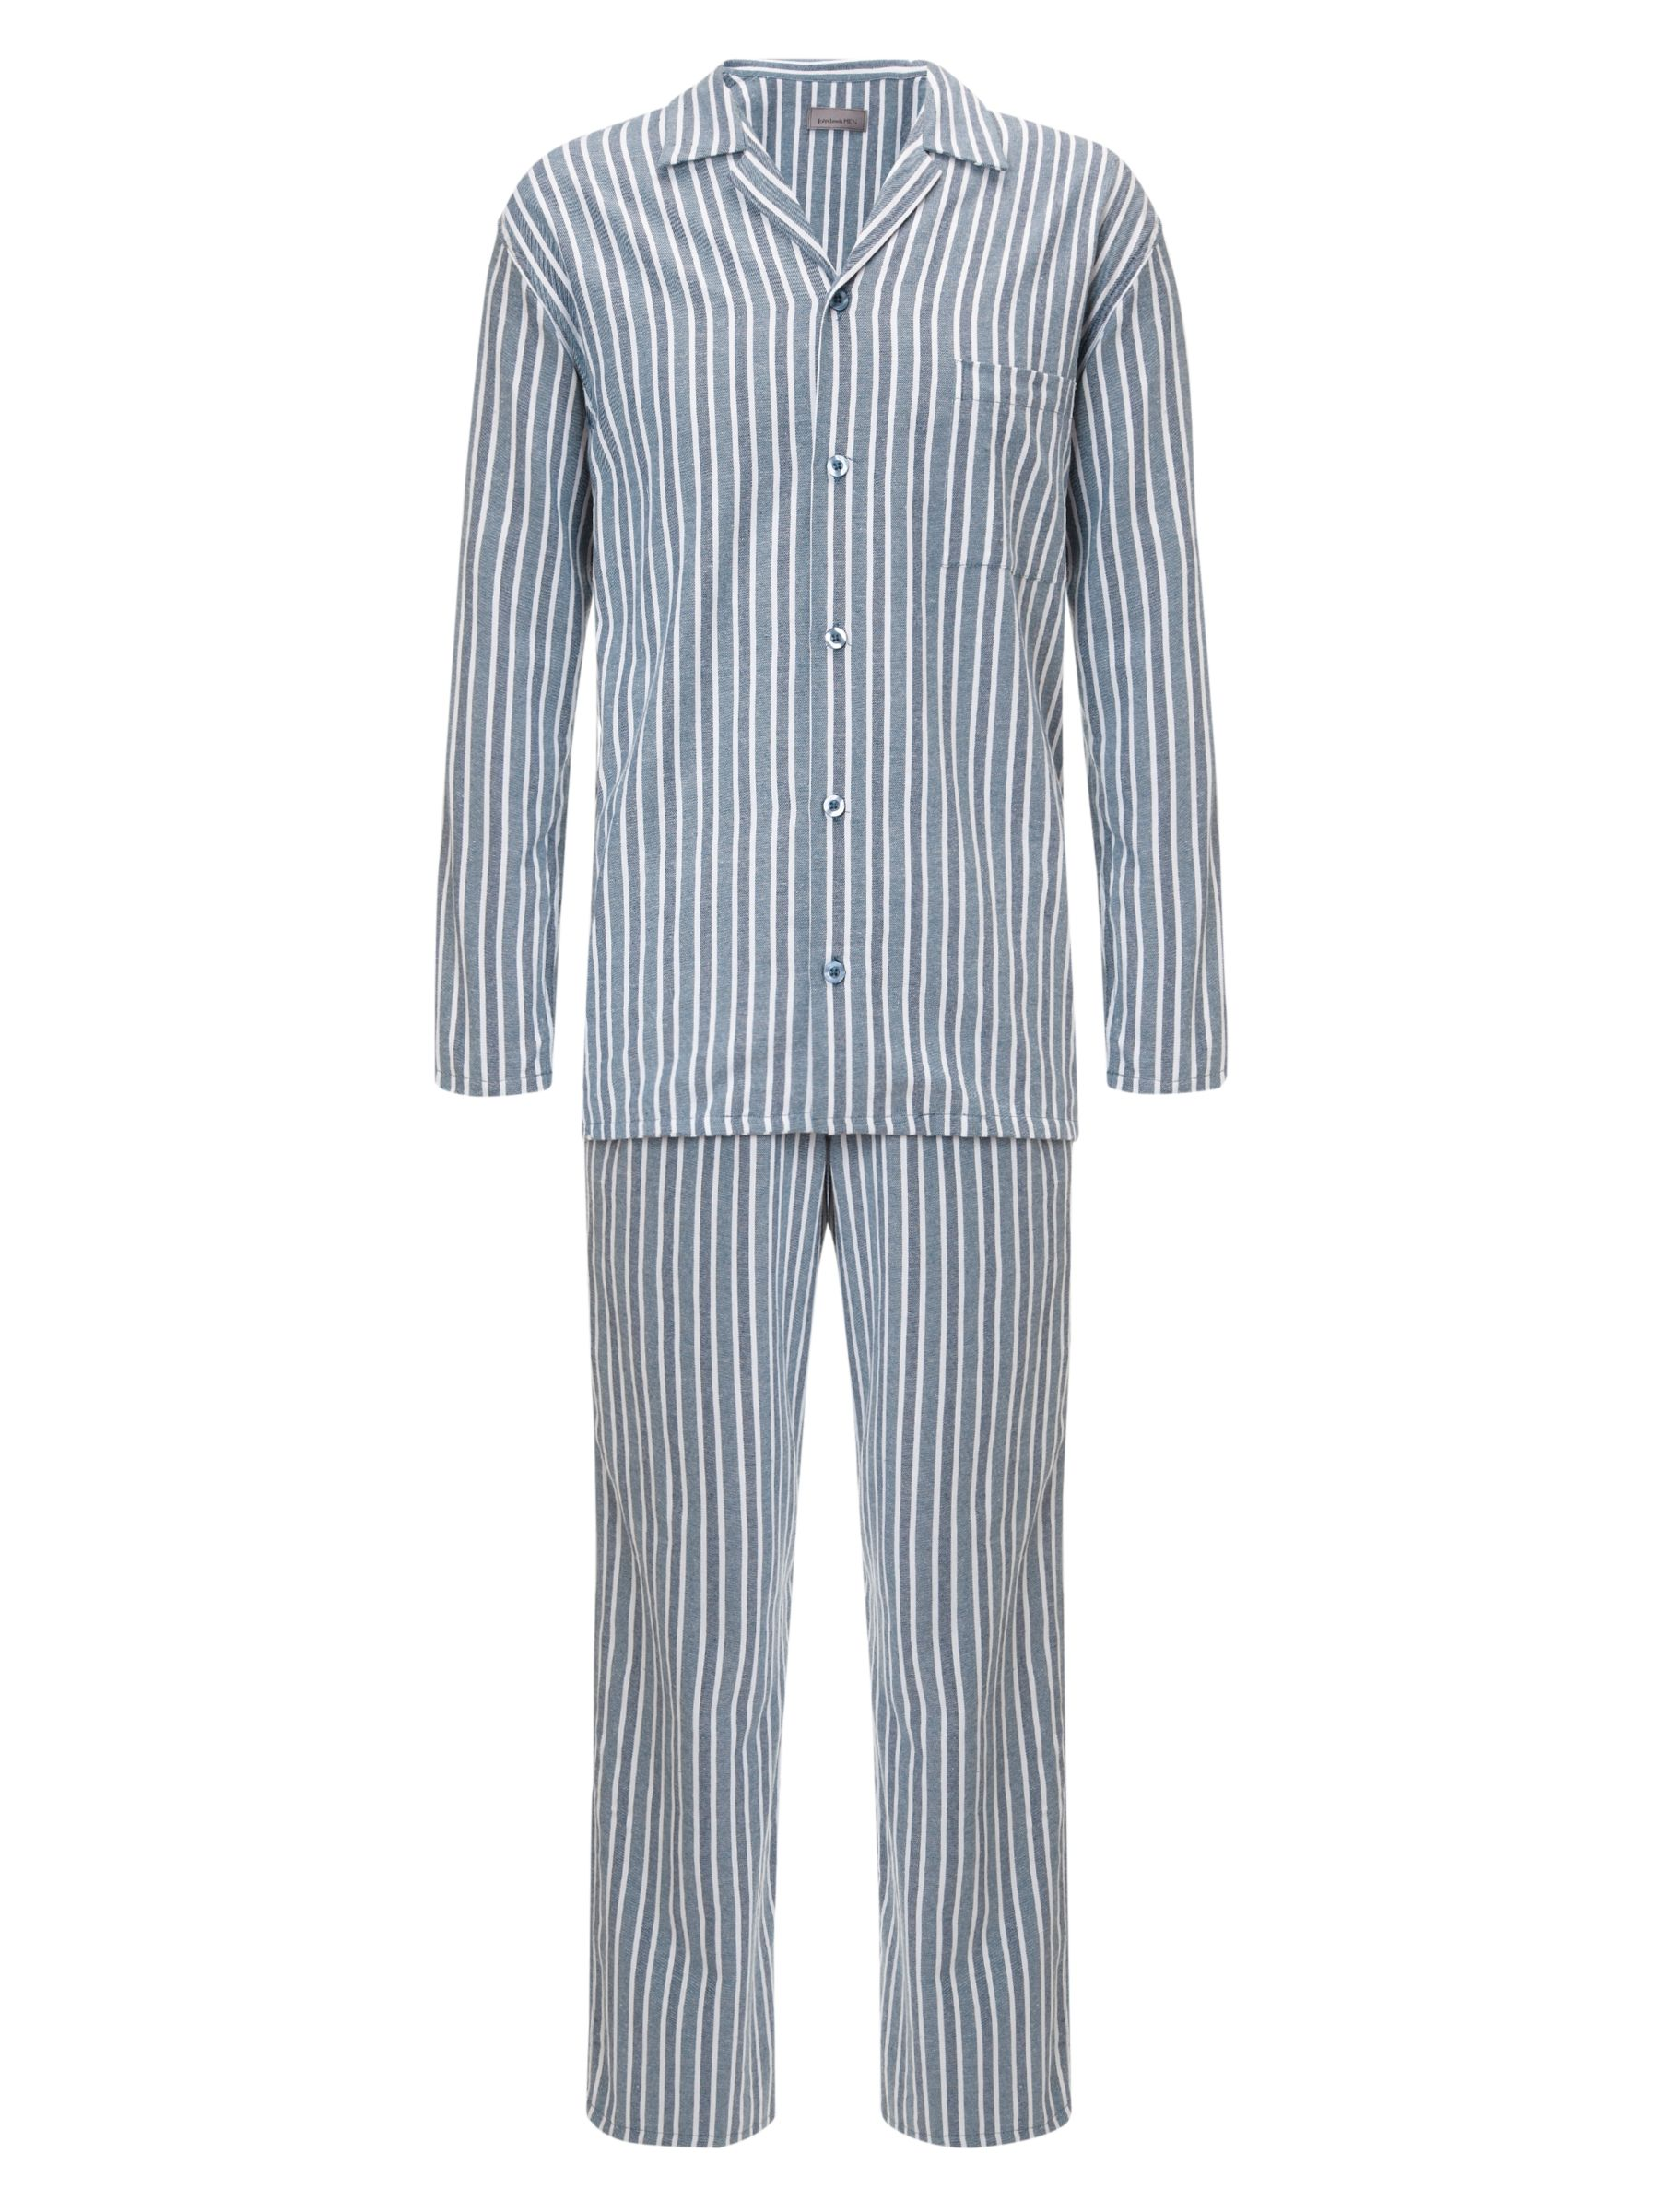 John Lewis Brushed Cotton Stripe Pyjamas, Grey